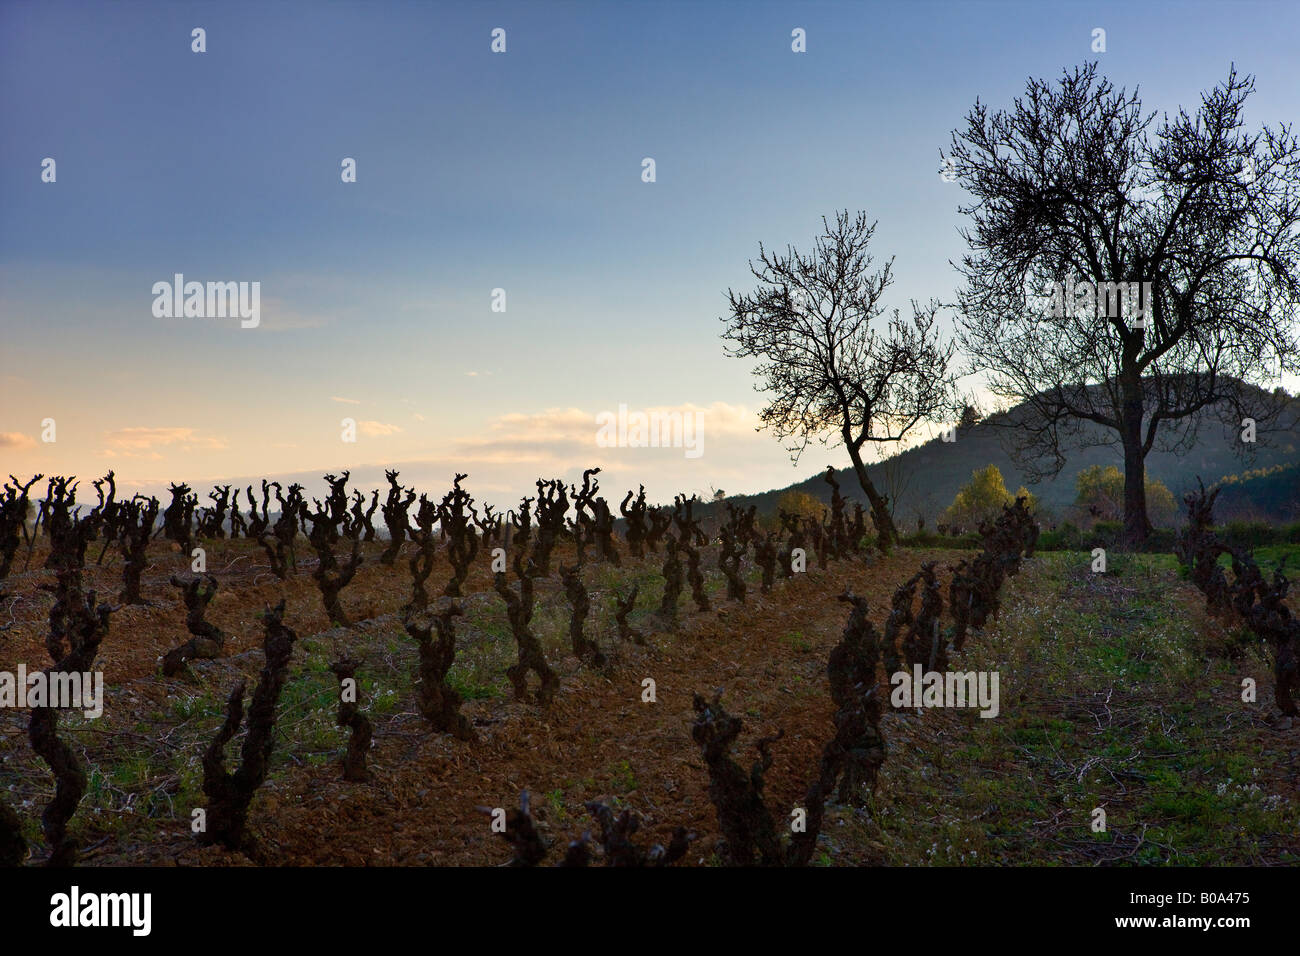 rows of branching vines in a french vineyard - Stock Image